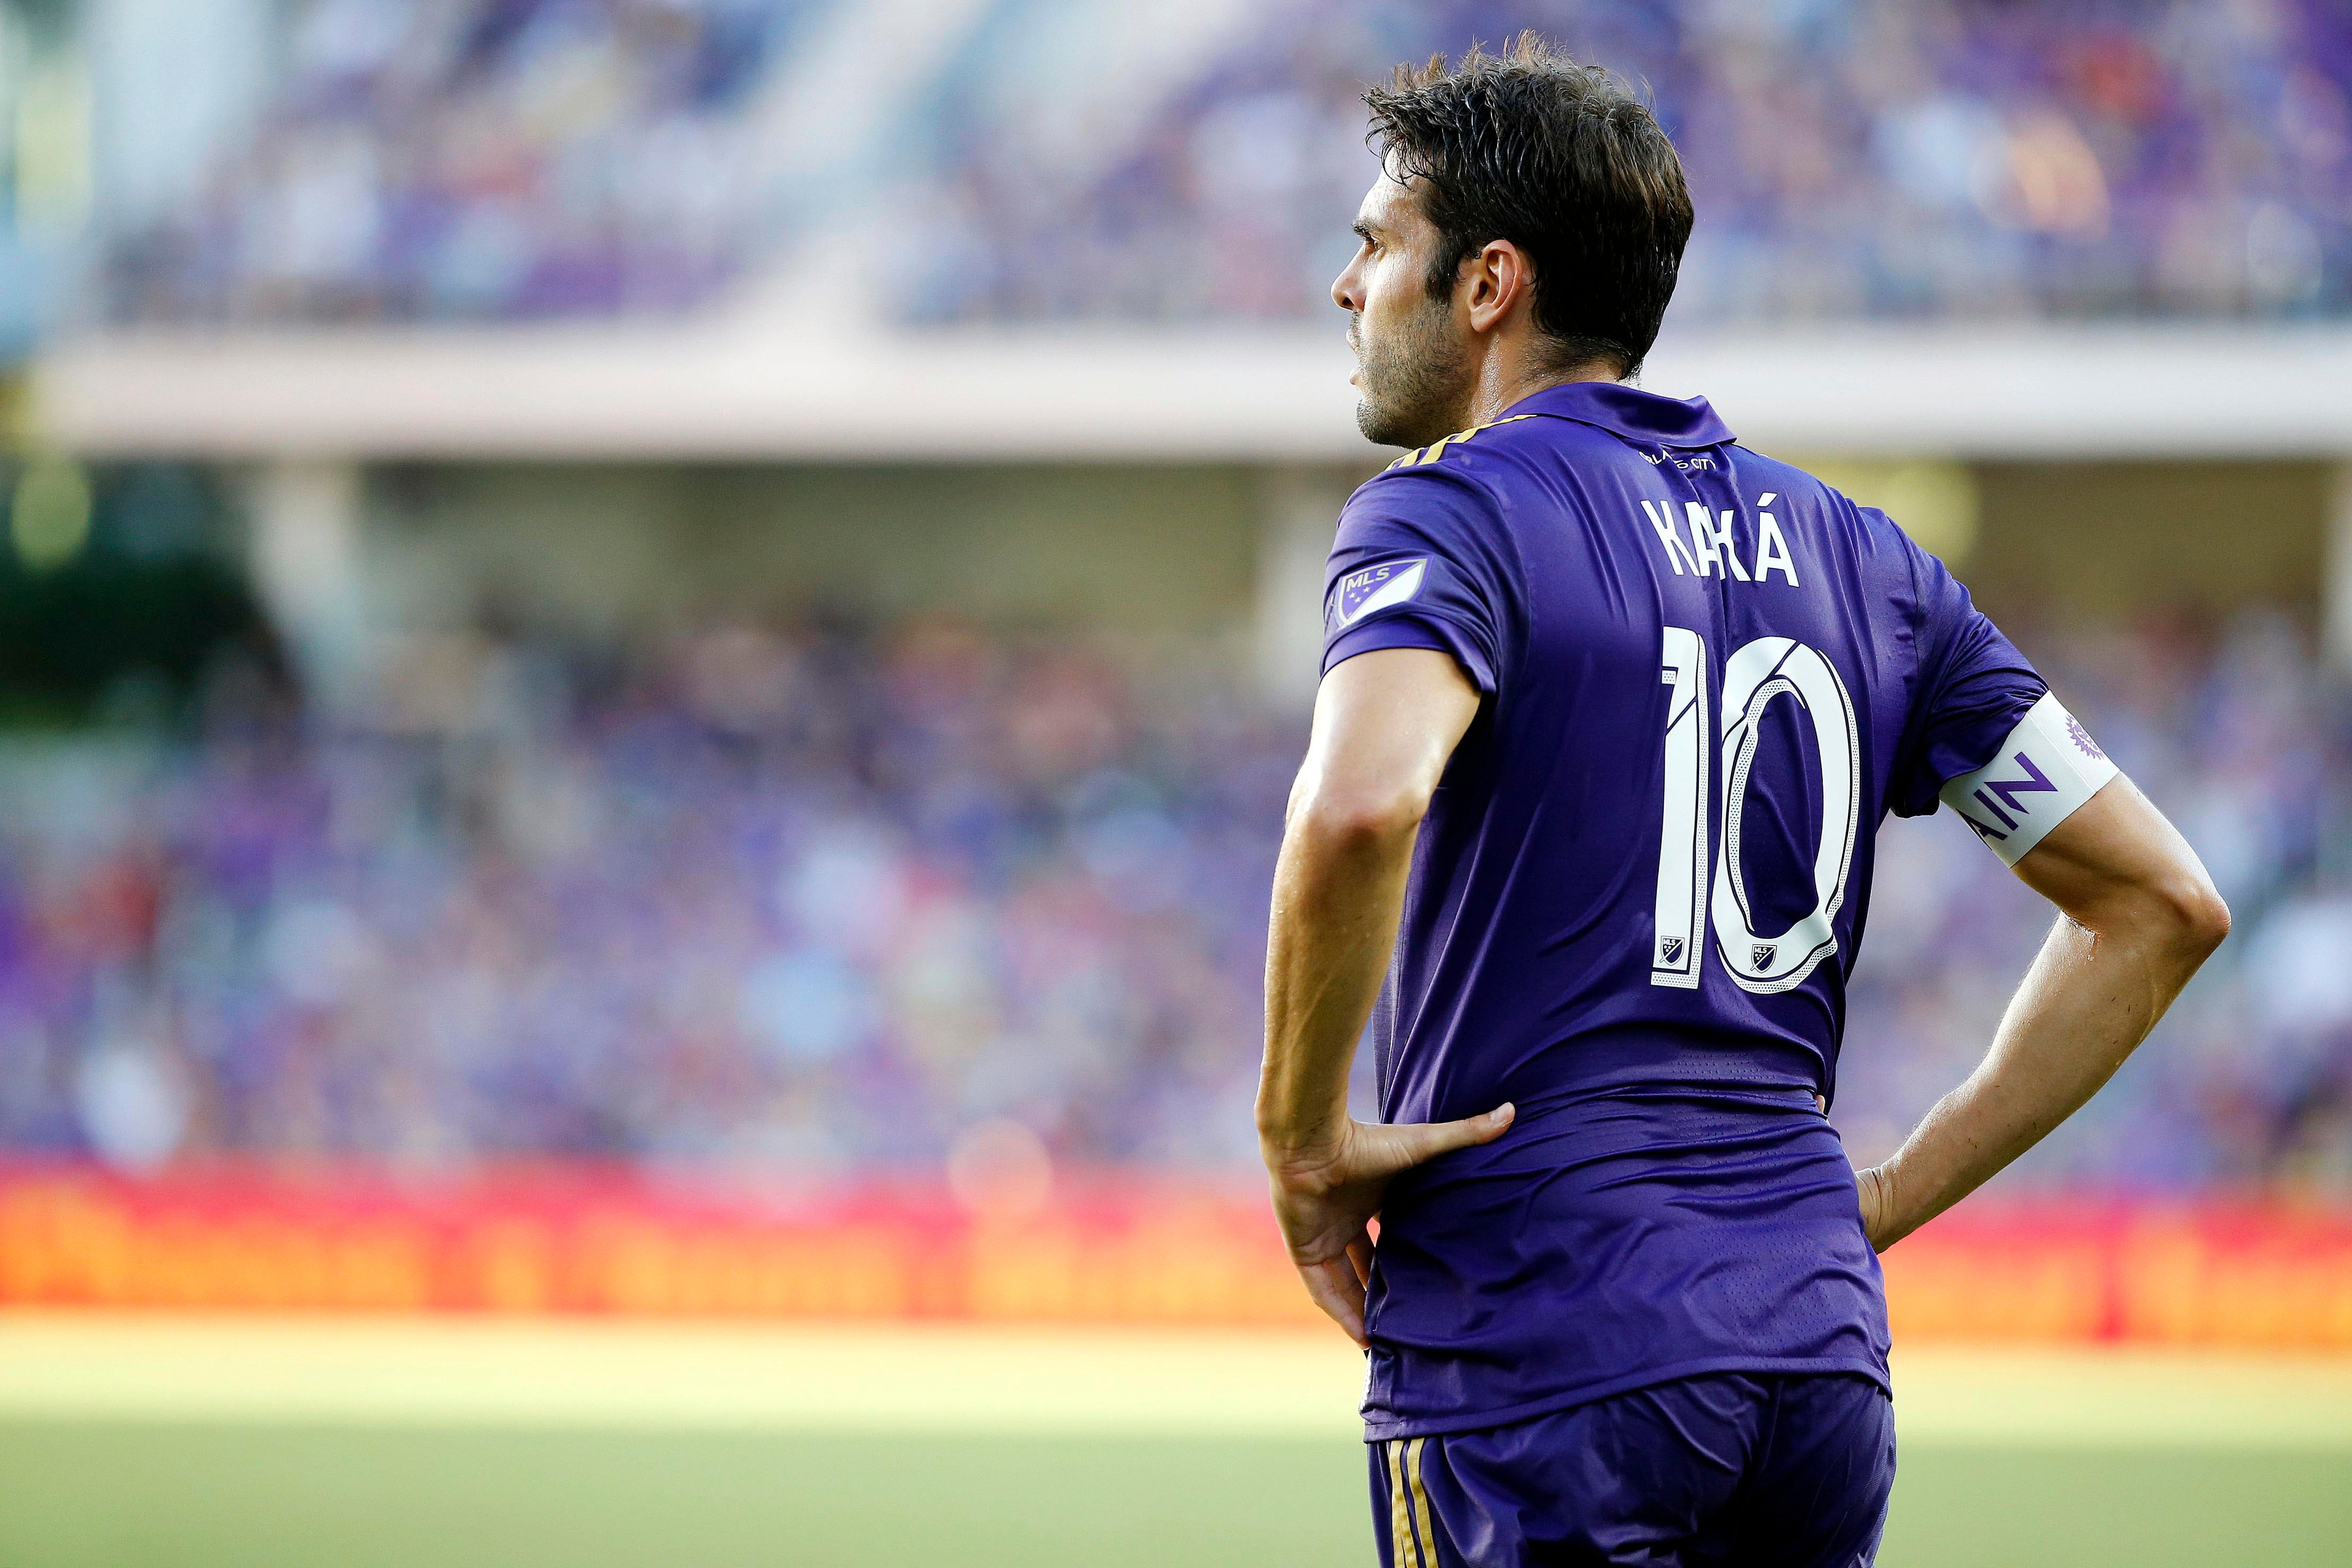 Columbus Crew spoil Kaka's final game in Orlando